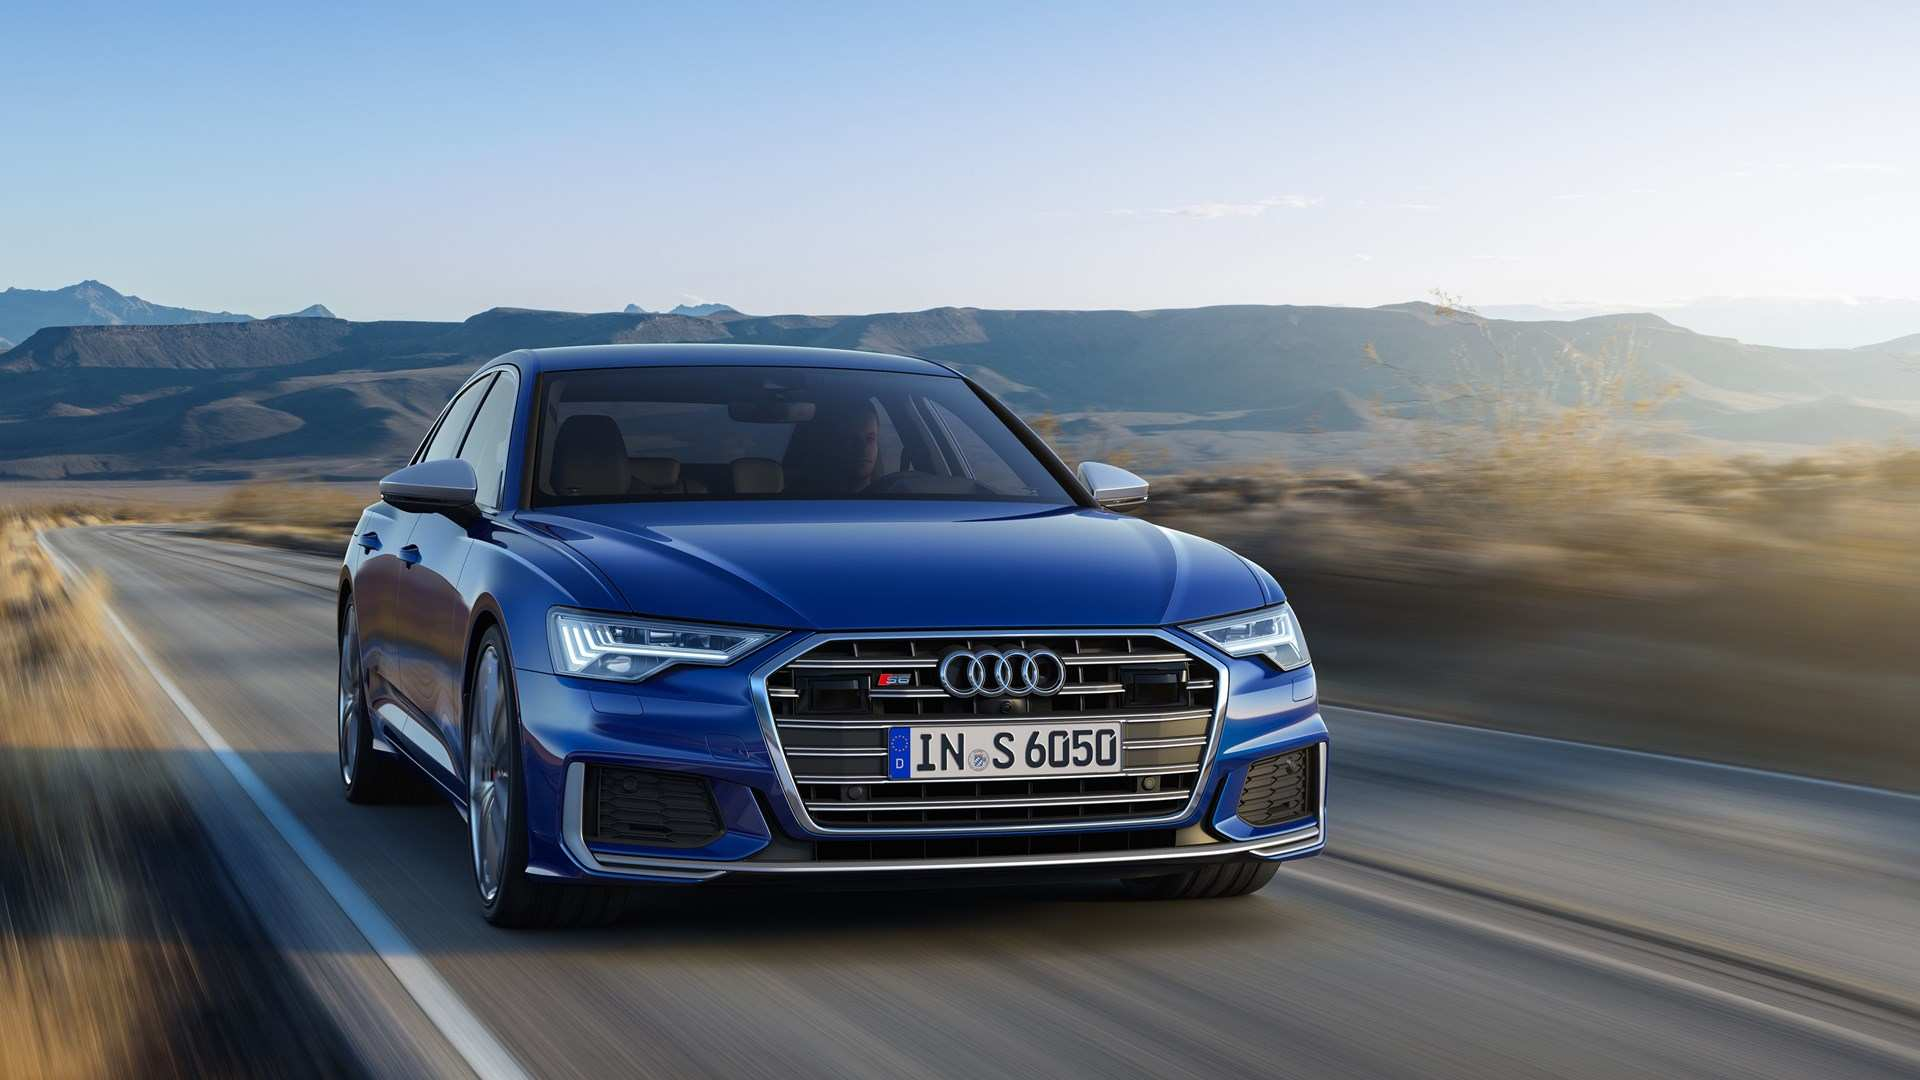 49 All New 2020 Audi S6 Release